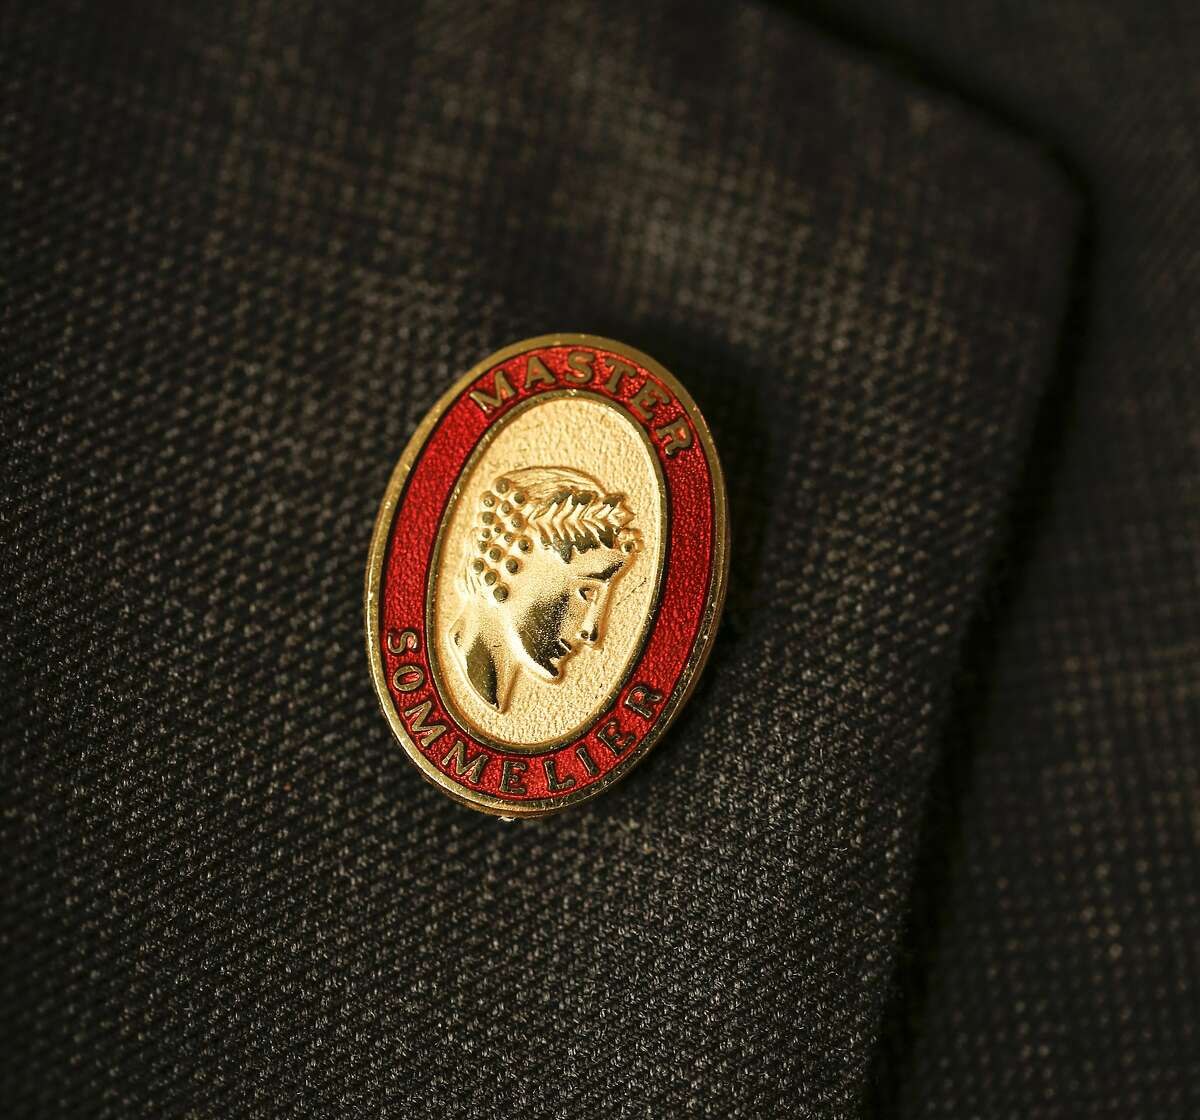 Candidates who pass the master sommelier exam earn a coveted lapel pin.